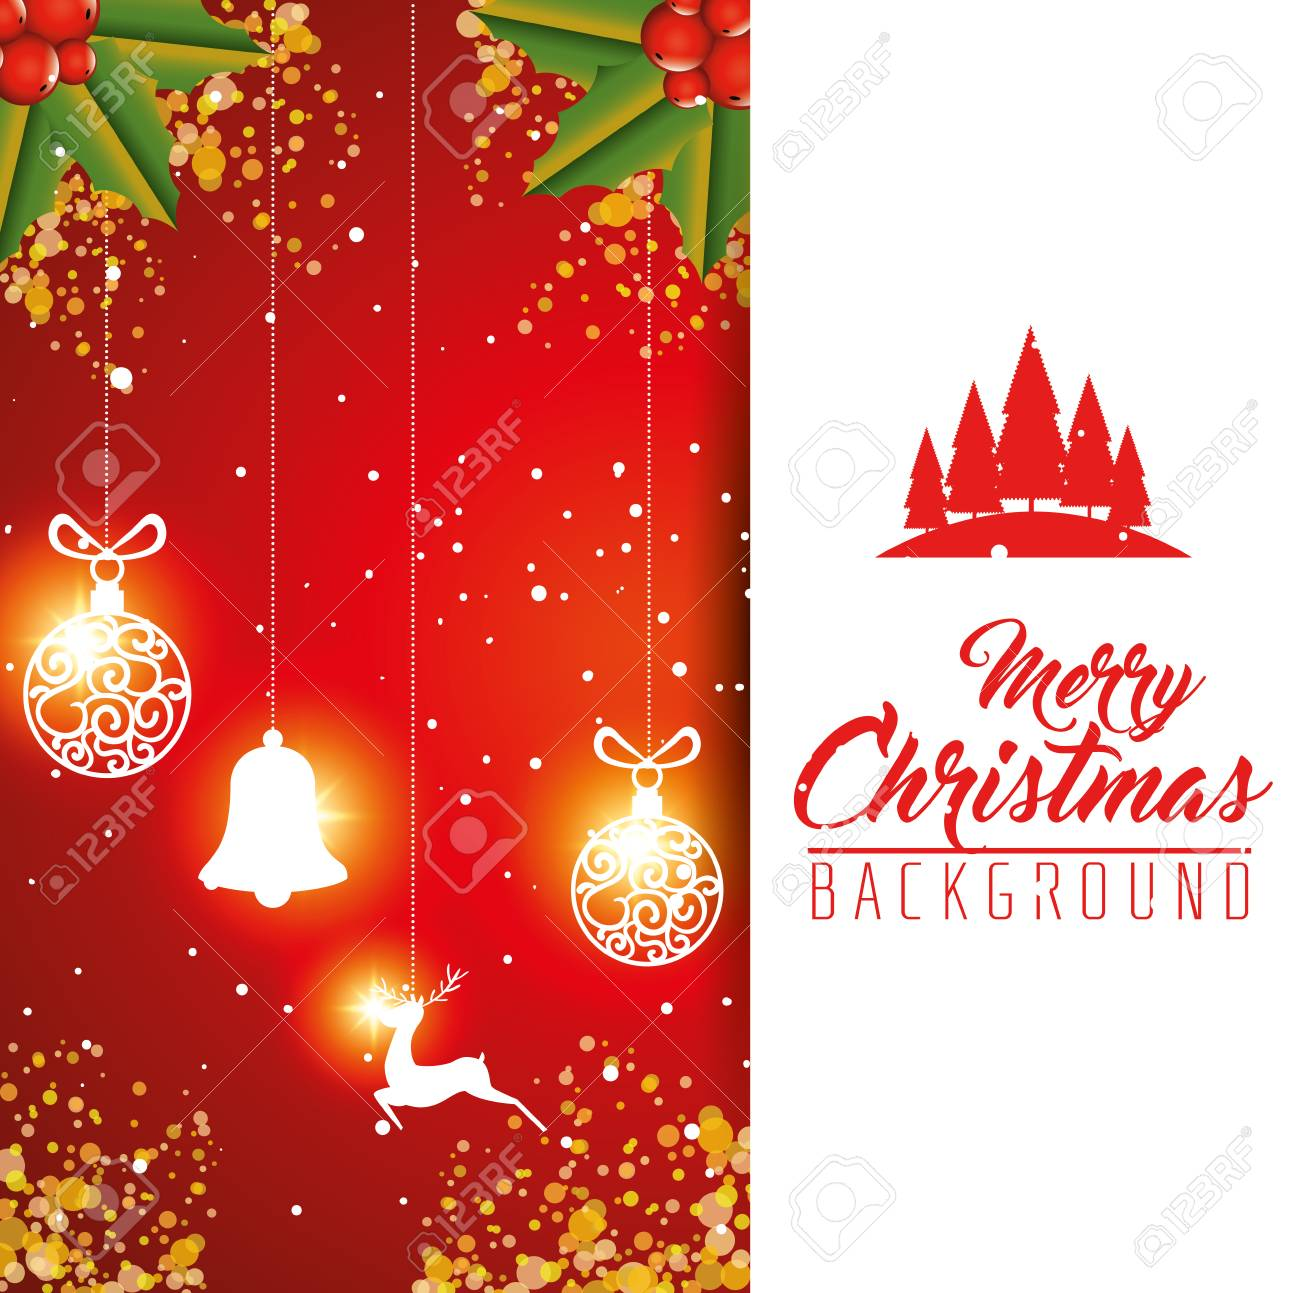 Christmas Background Design.Colorful And Bright Merry Christmas Background Vector Illustration